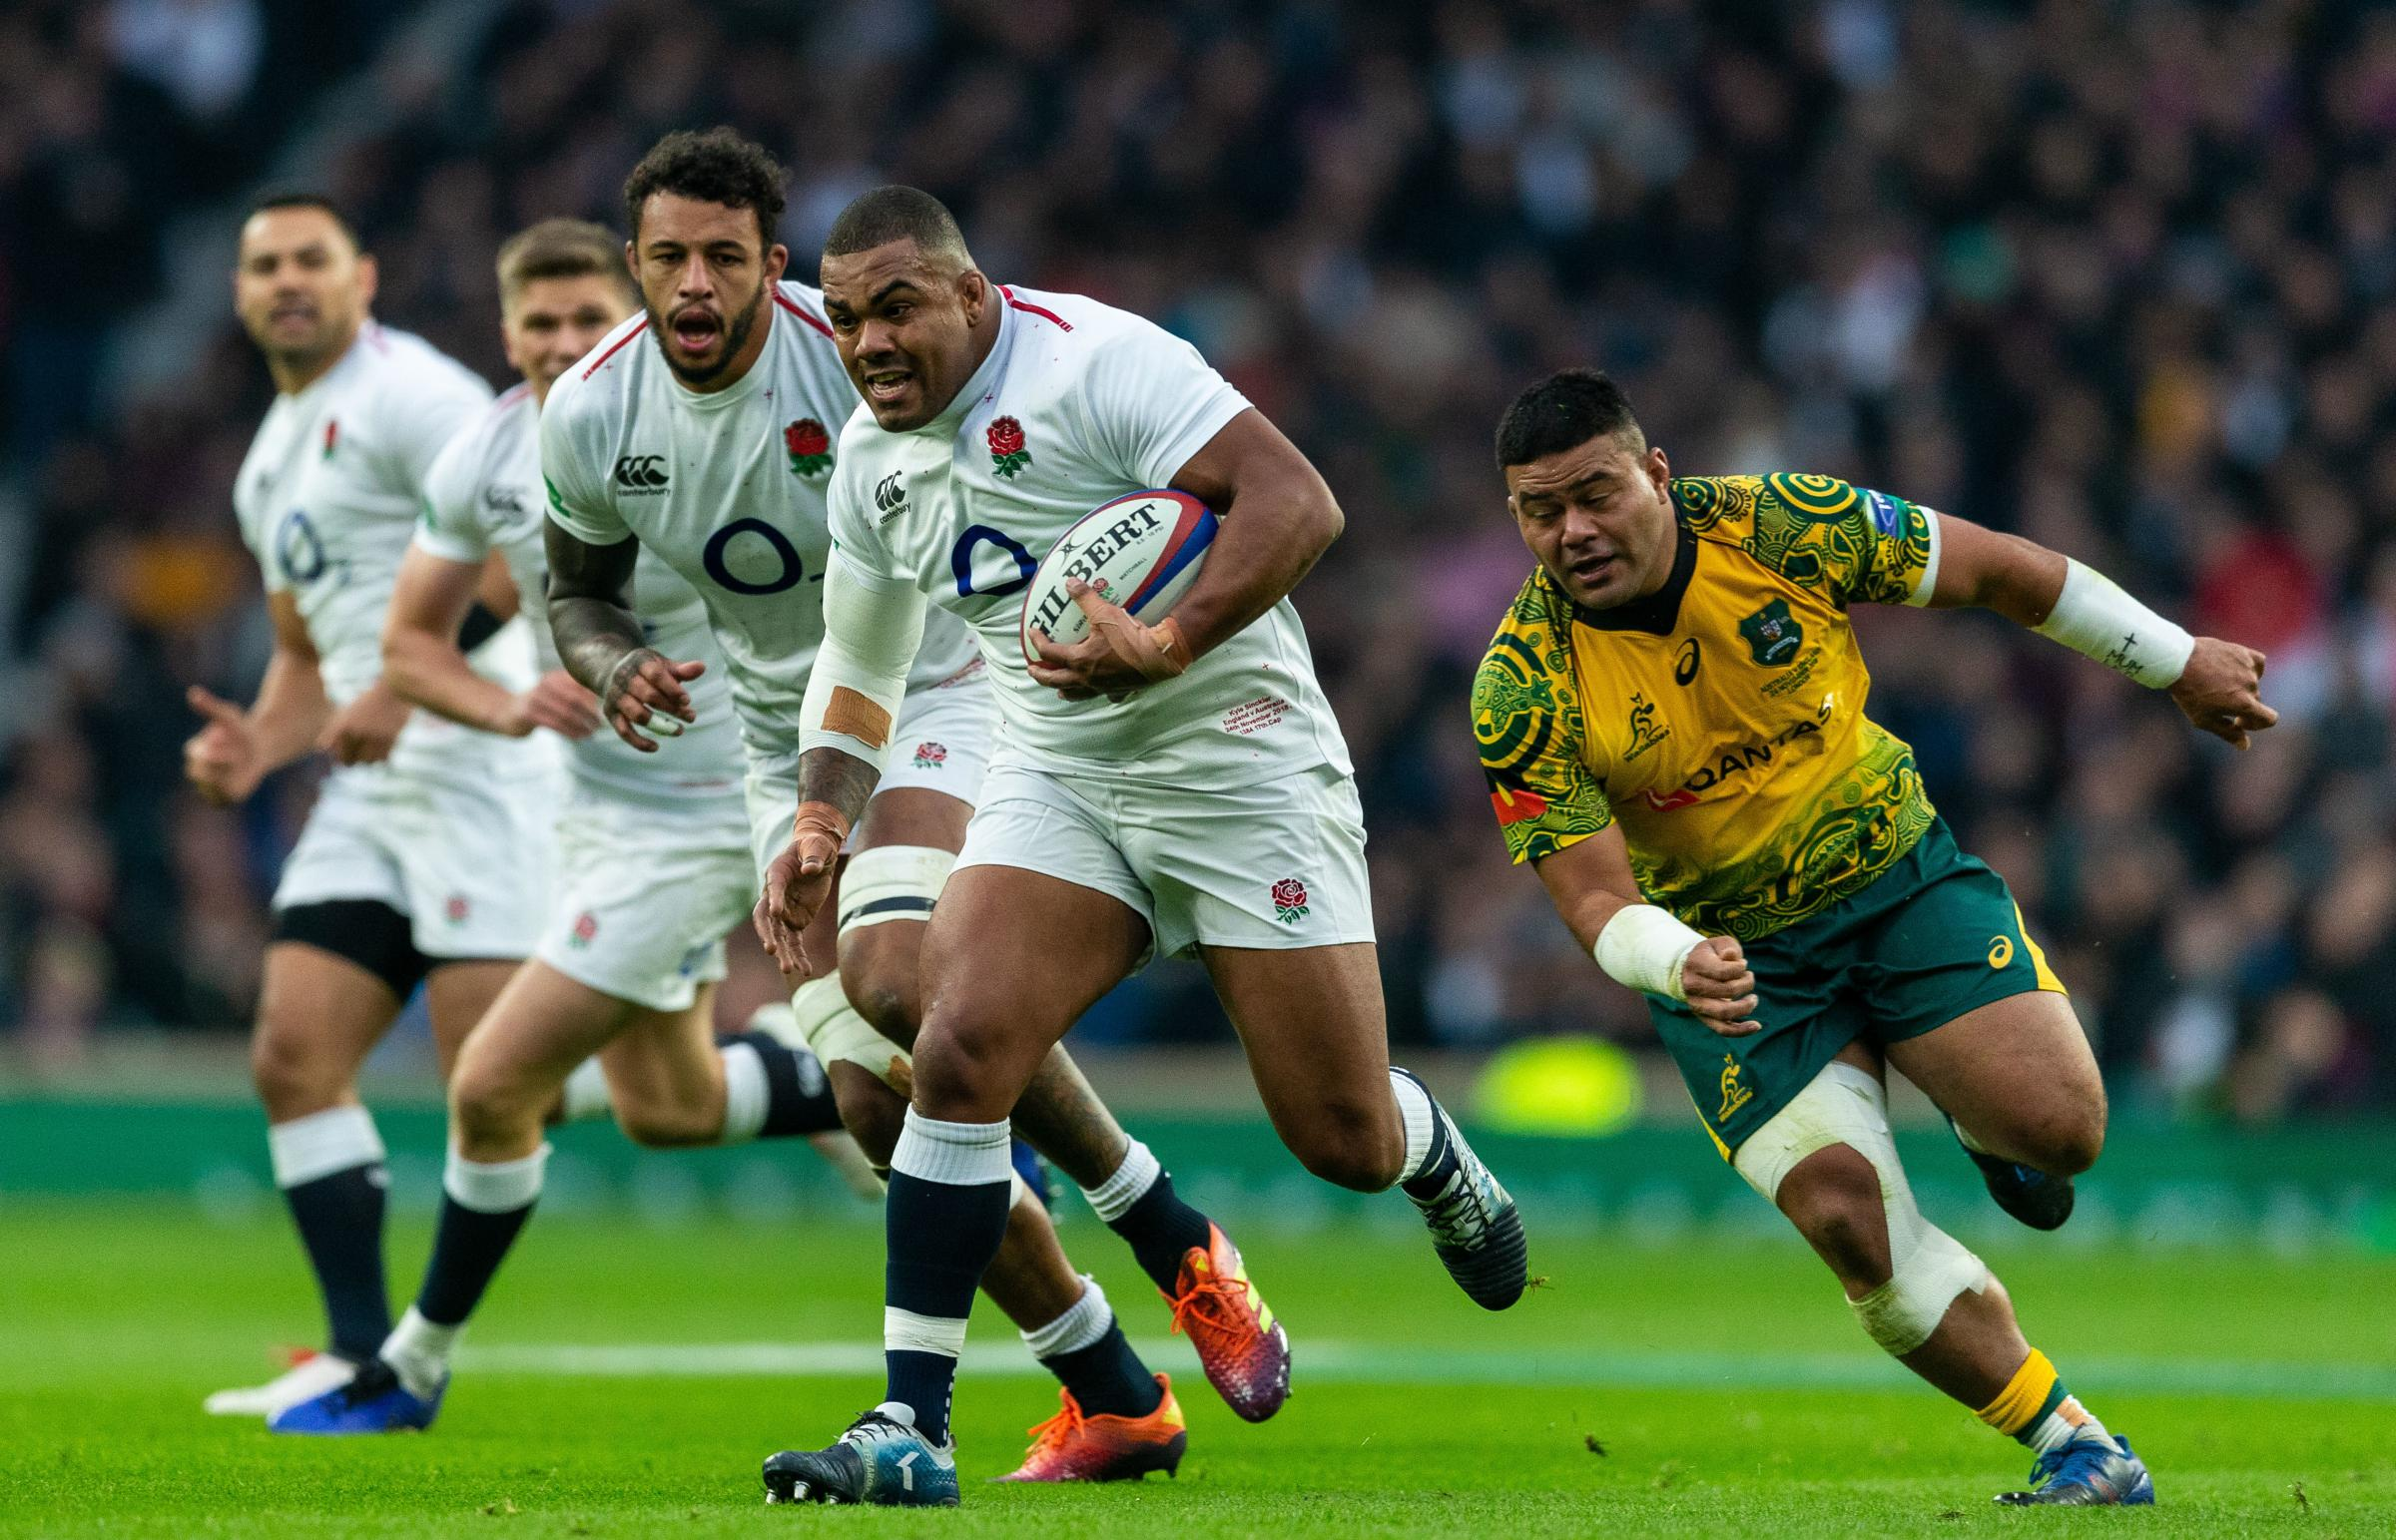 England's Kyle Sinckler during the Quilter Autumn International at Twickenham Stadium, London. Photo: Paul Harding/PA Wire.